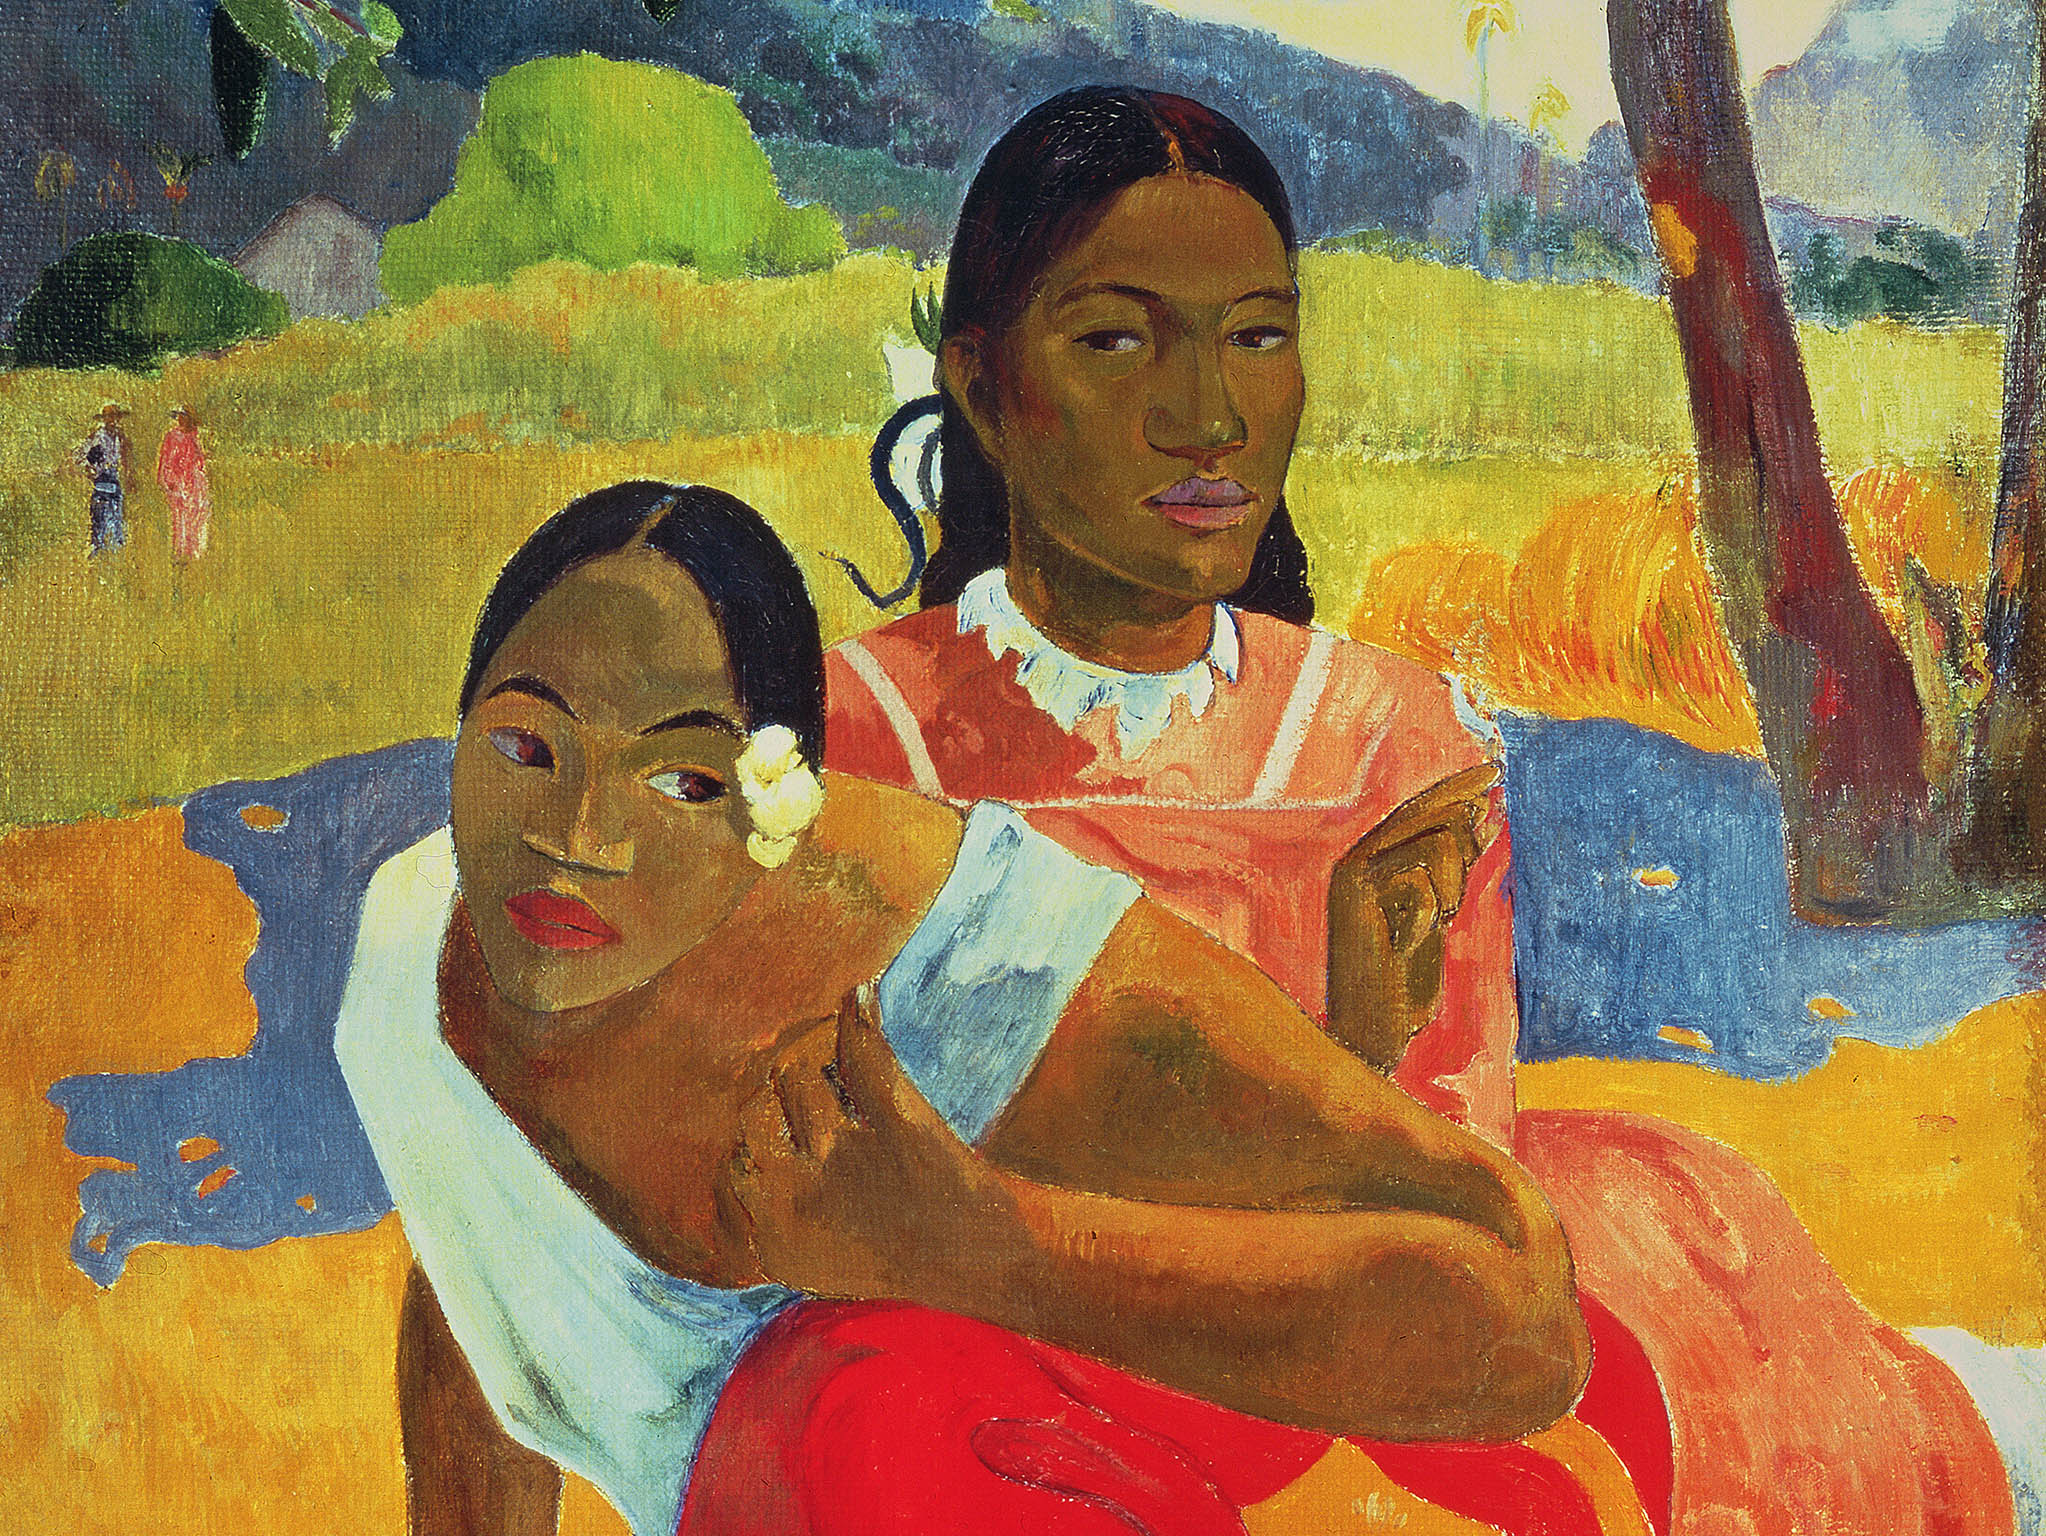 Gauguin Solntsev continues to shock the audience, pleasing his elderly spouse in plain sight 54